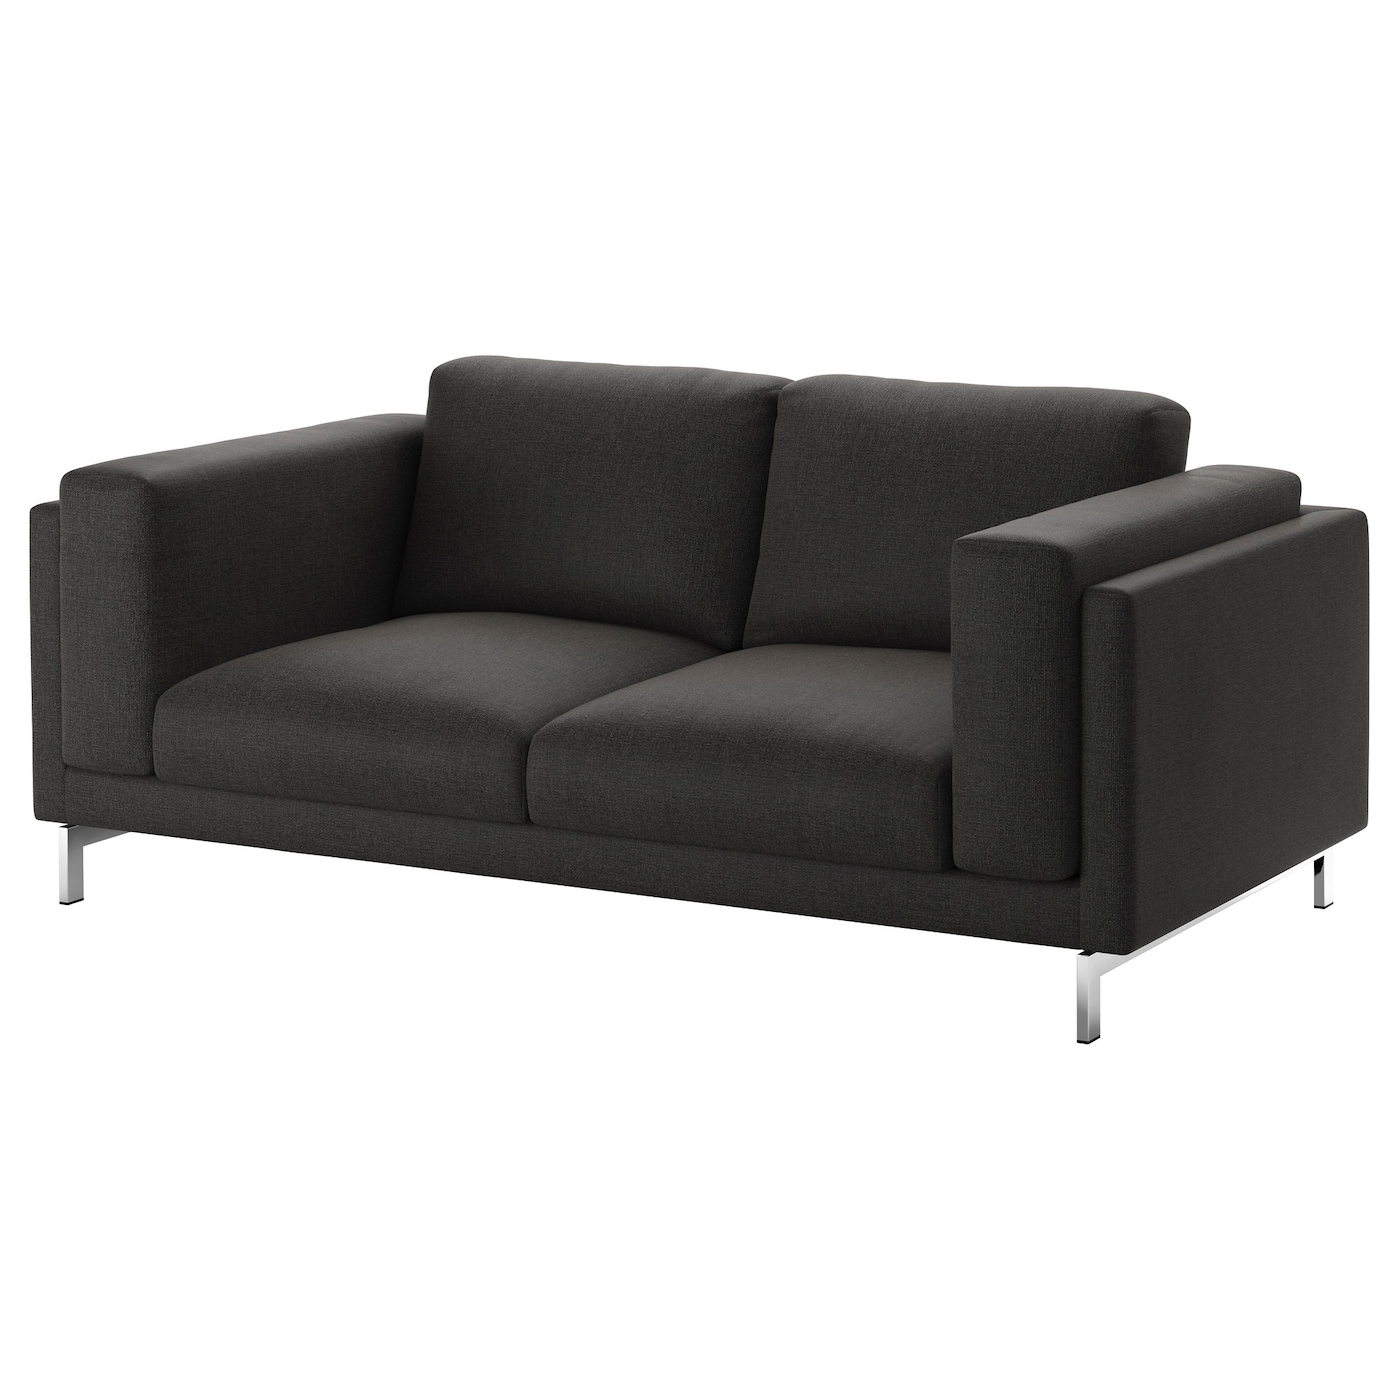 nockeby two seat sofa ten dark grey chrome plated ikea. Black Bedroom Furniture Sets. Home Design Ideas